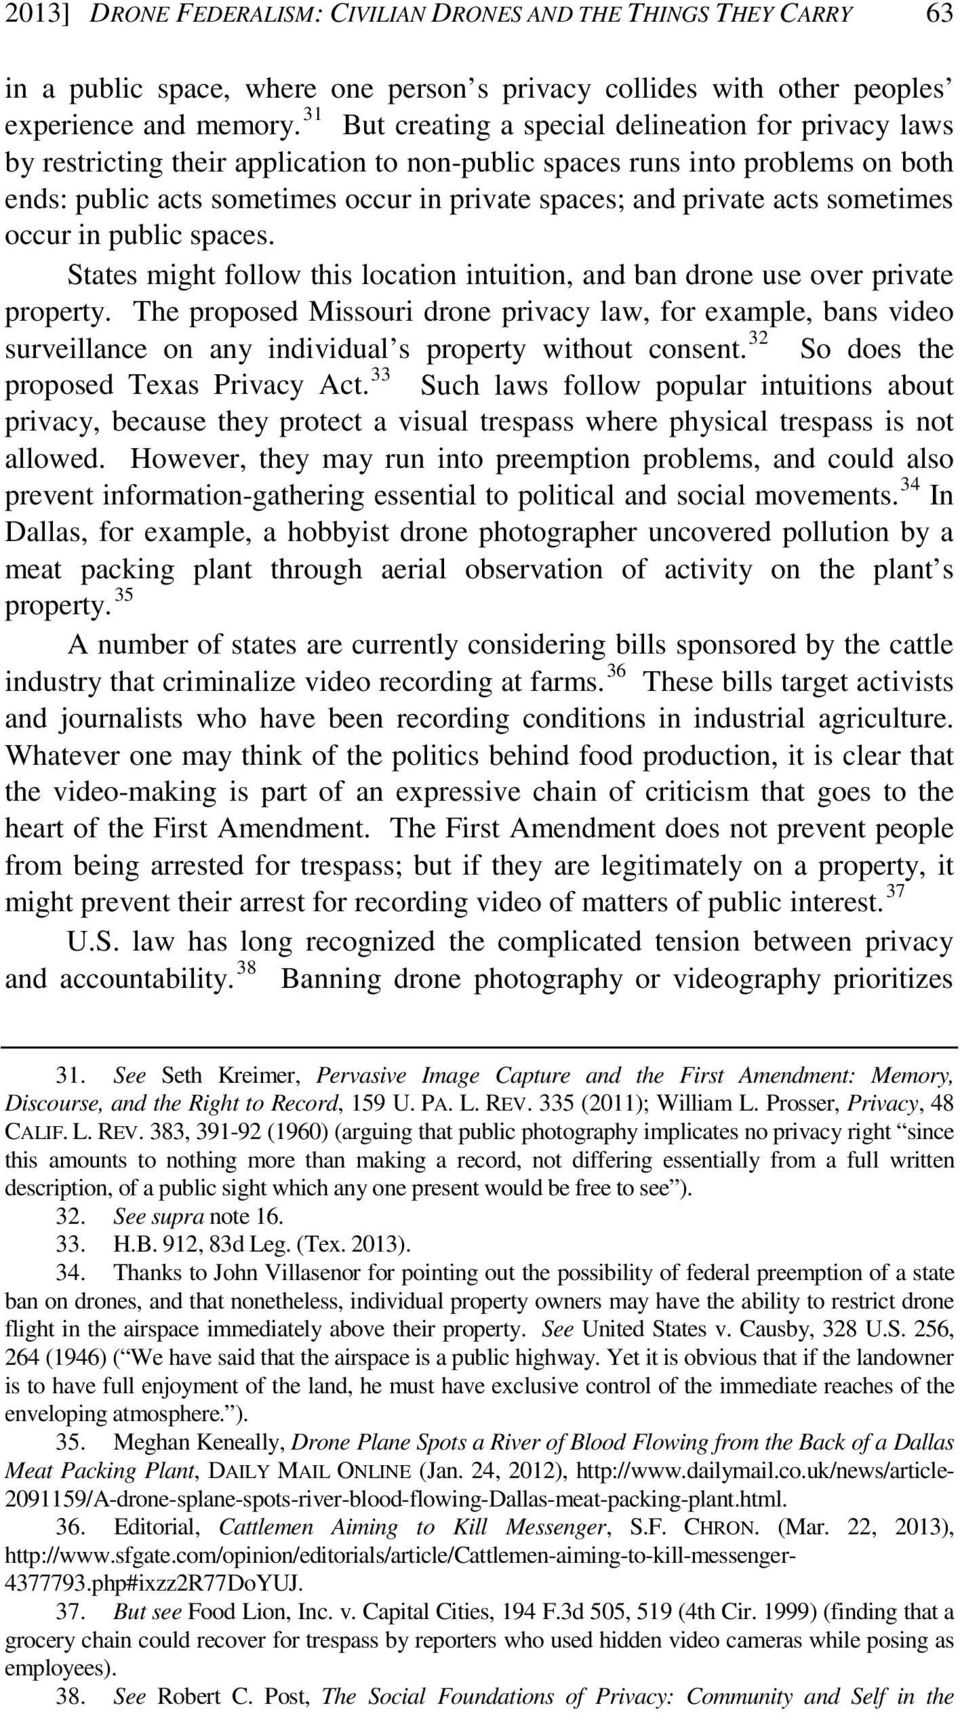 private acts sometimes occur in public spaces. States might follow this location intuition, and ban drone use over private property.